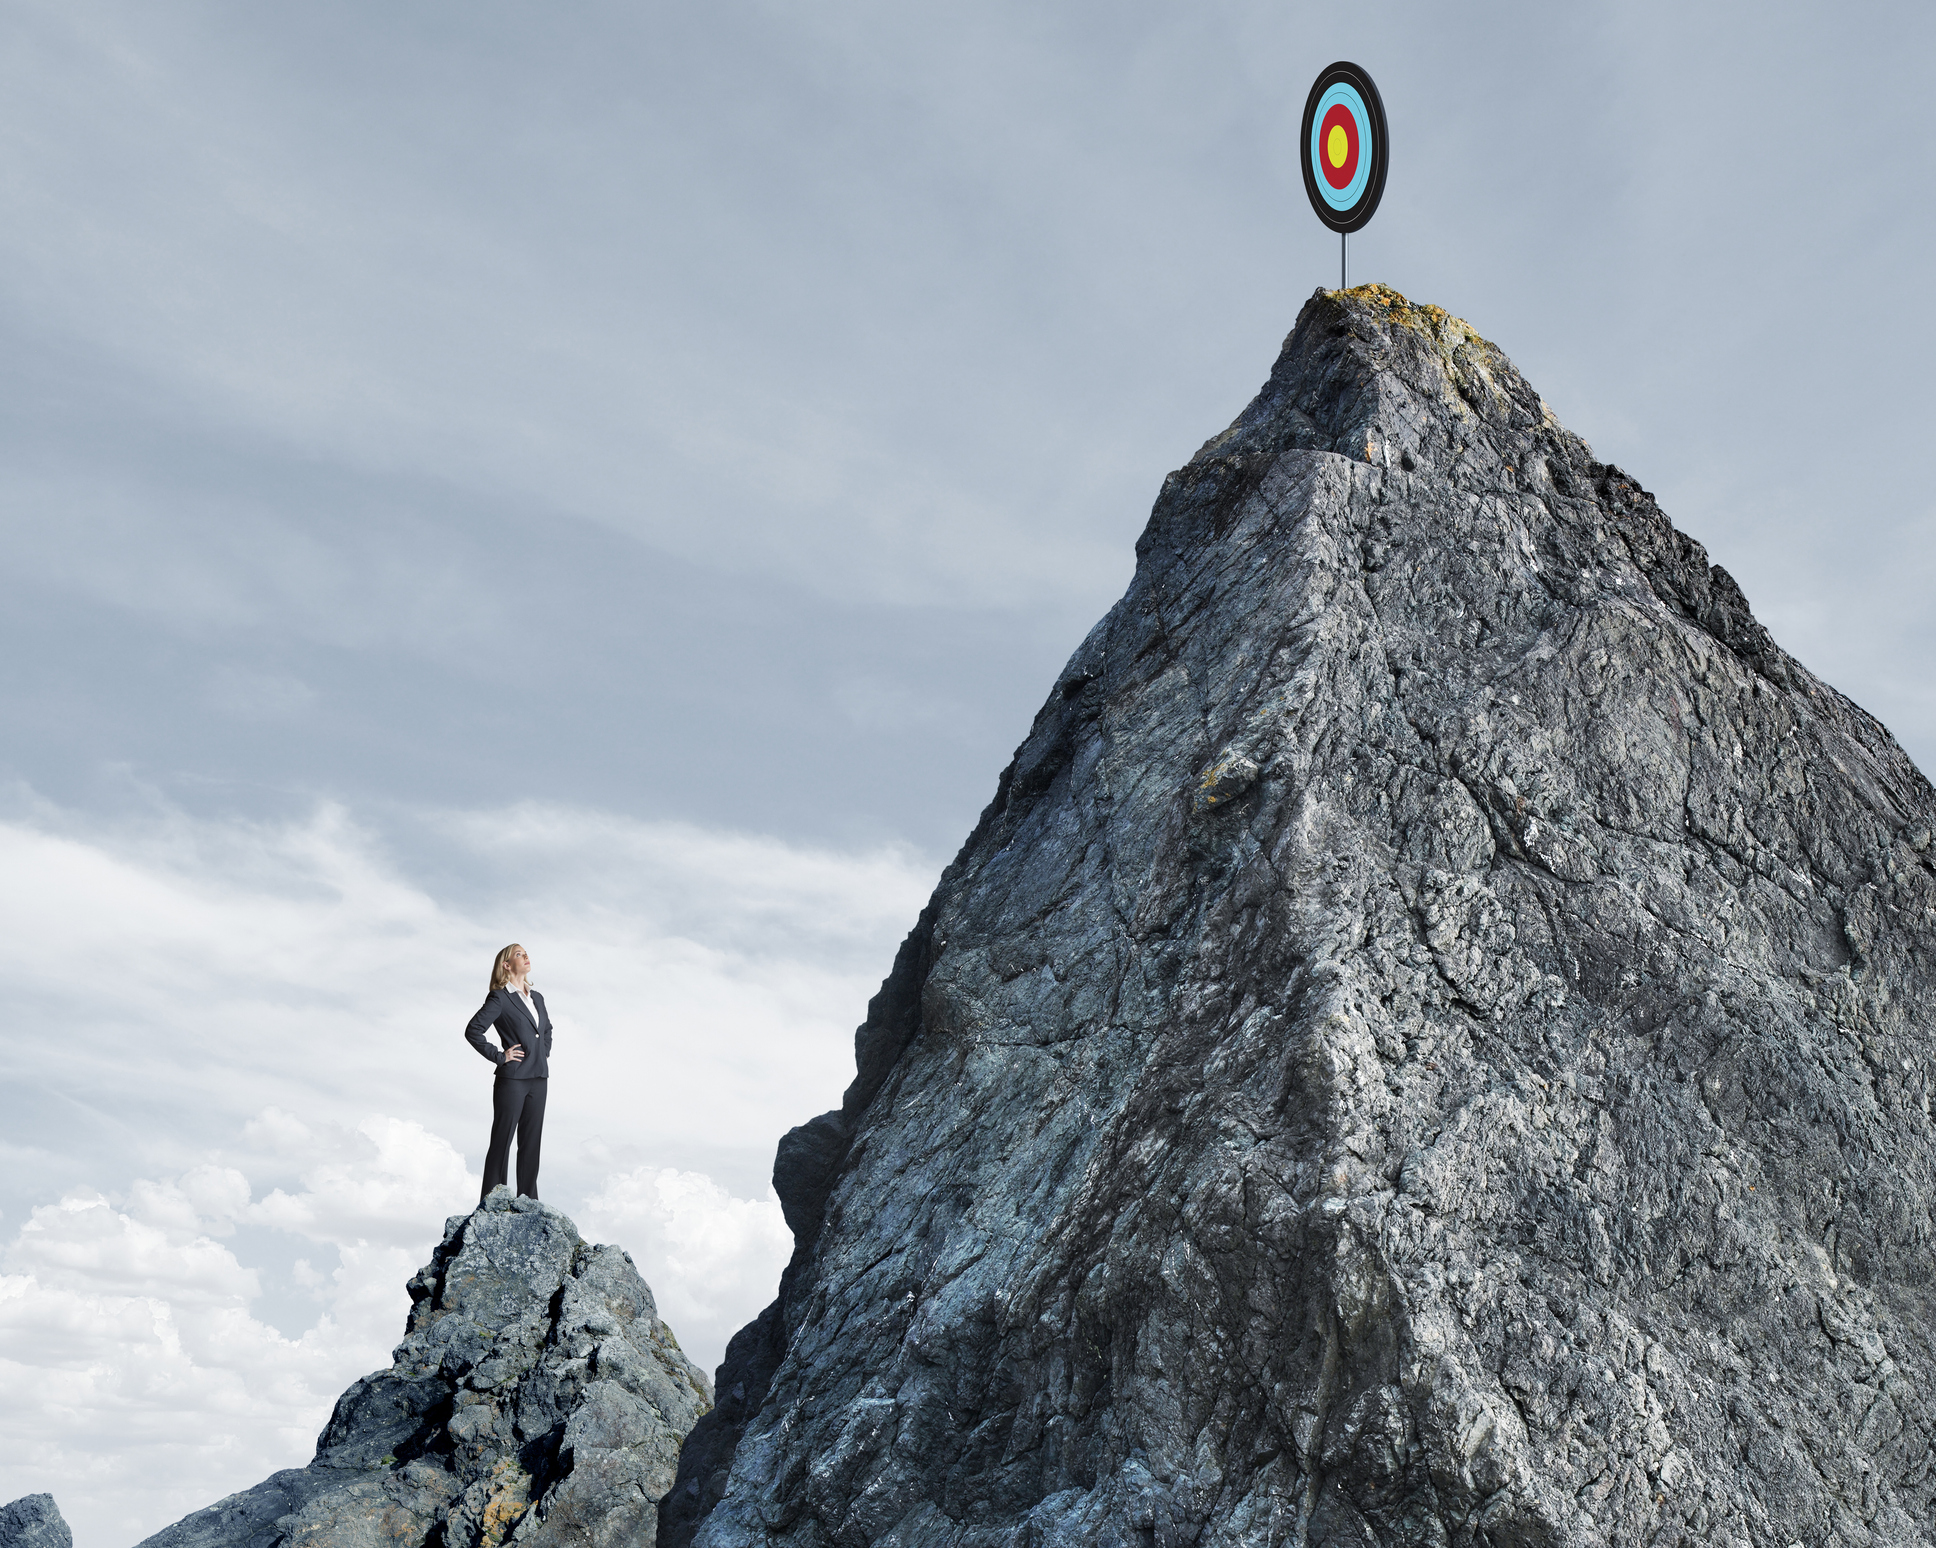 A businesswoman stands on top of a small mountain and looks up at a target that sits on top of a taller mountain top that rises in front of her.